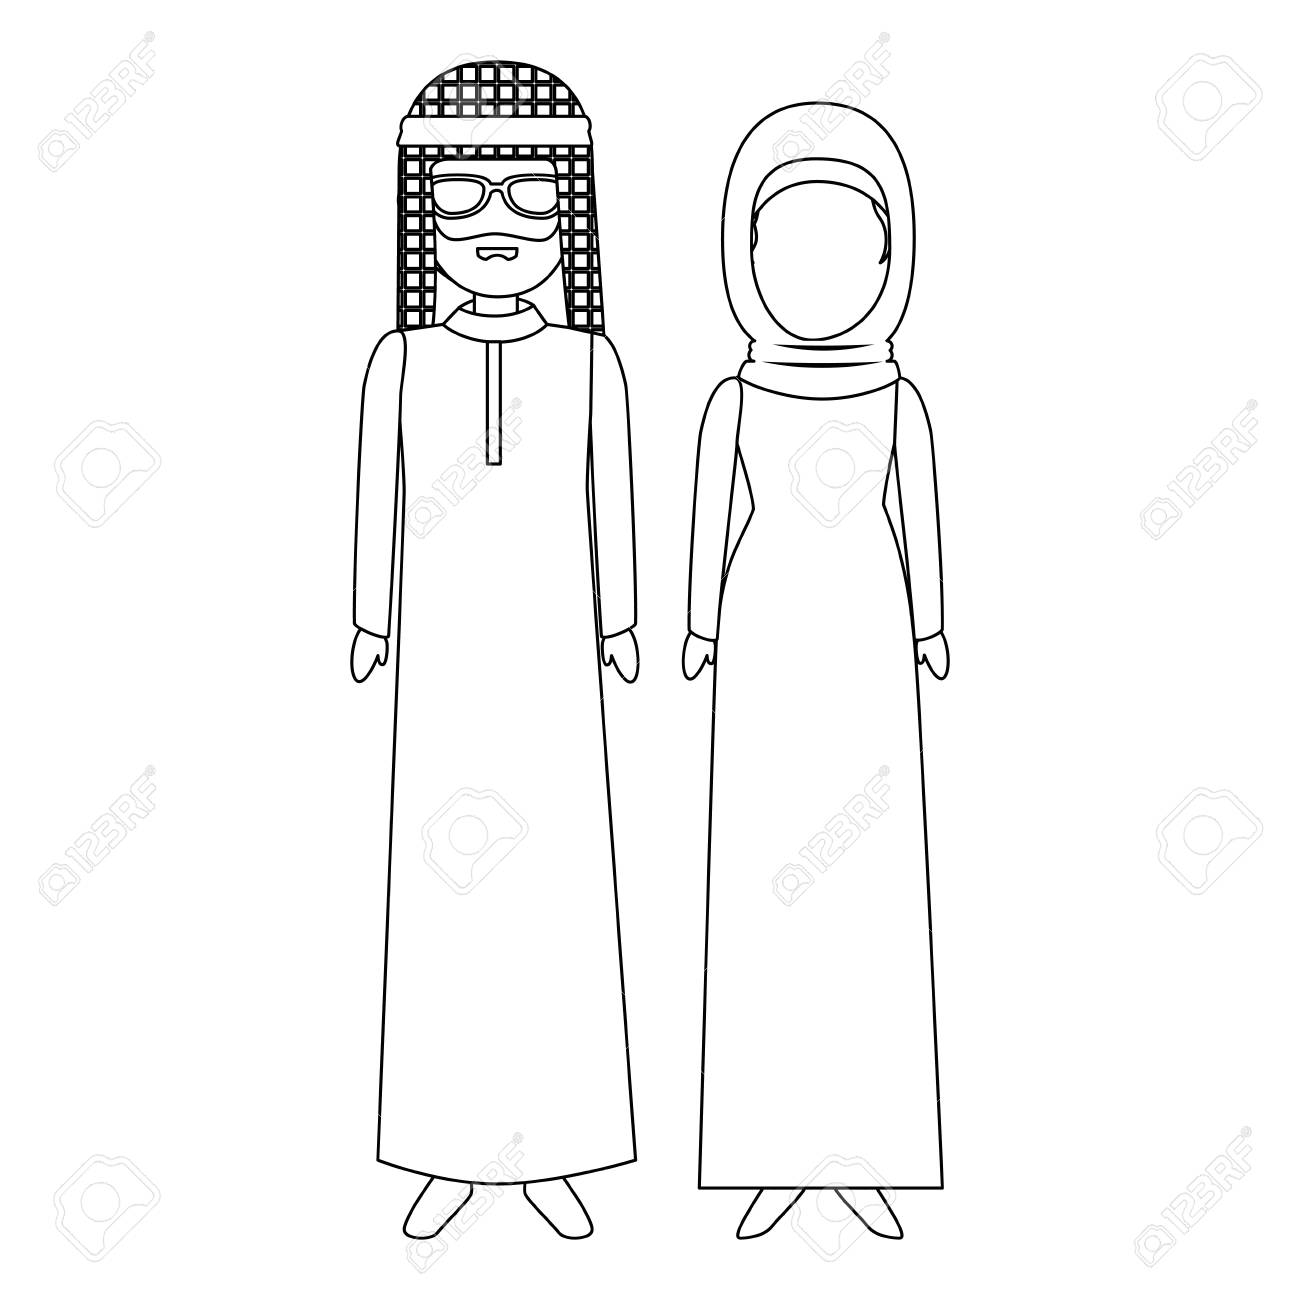 Muslim couple avatars characters vector illustration design stock vector 85660332